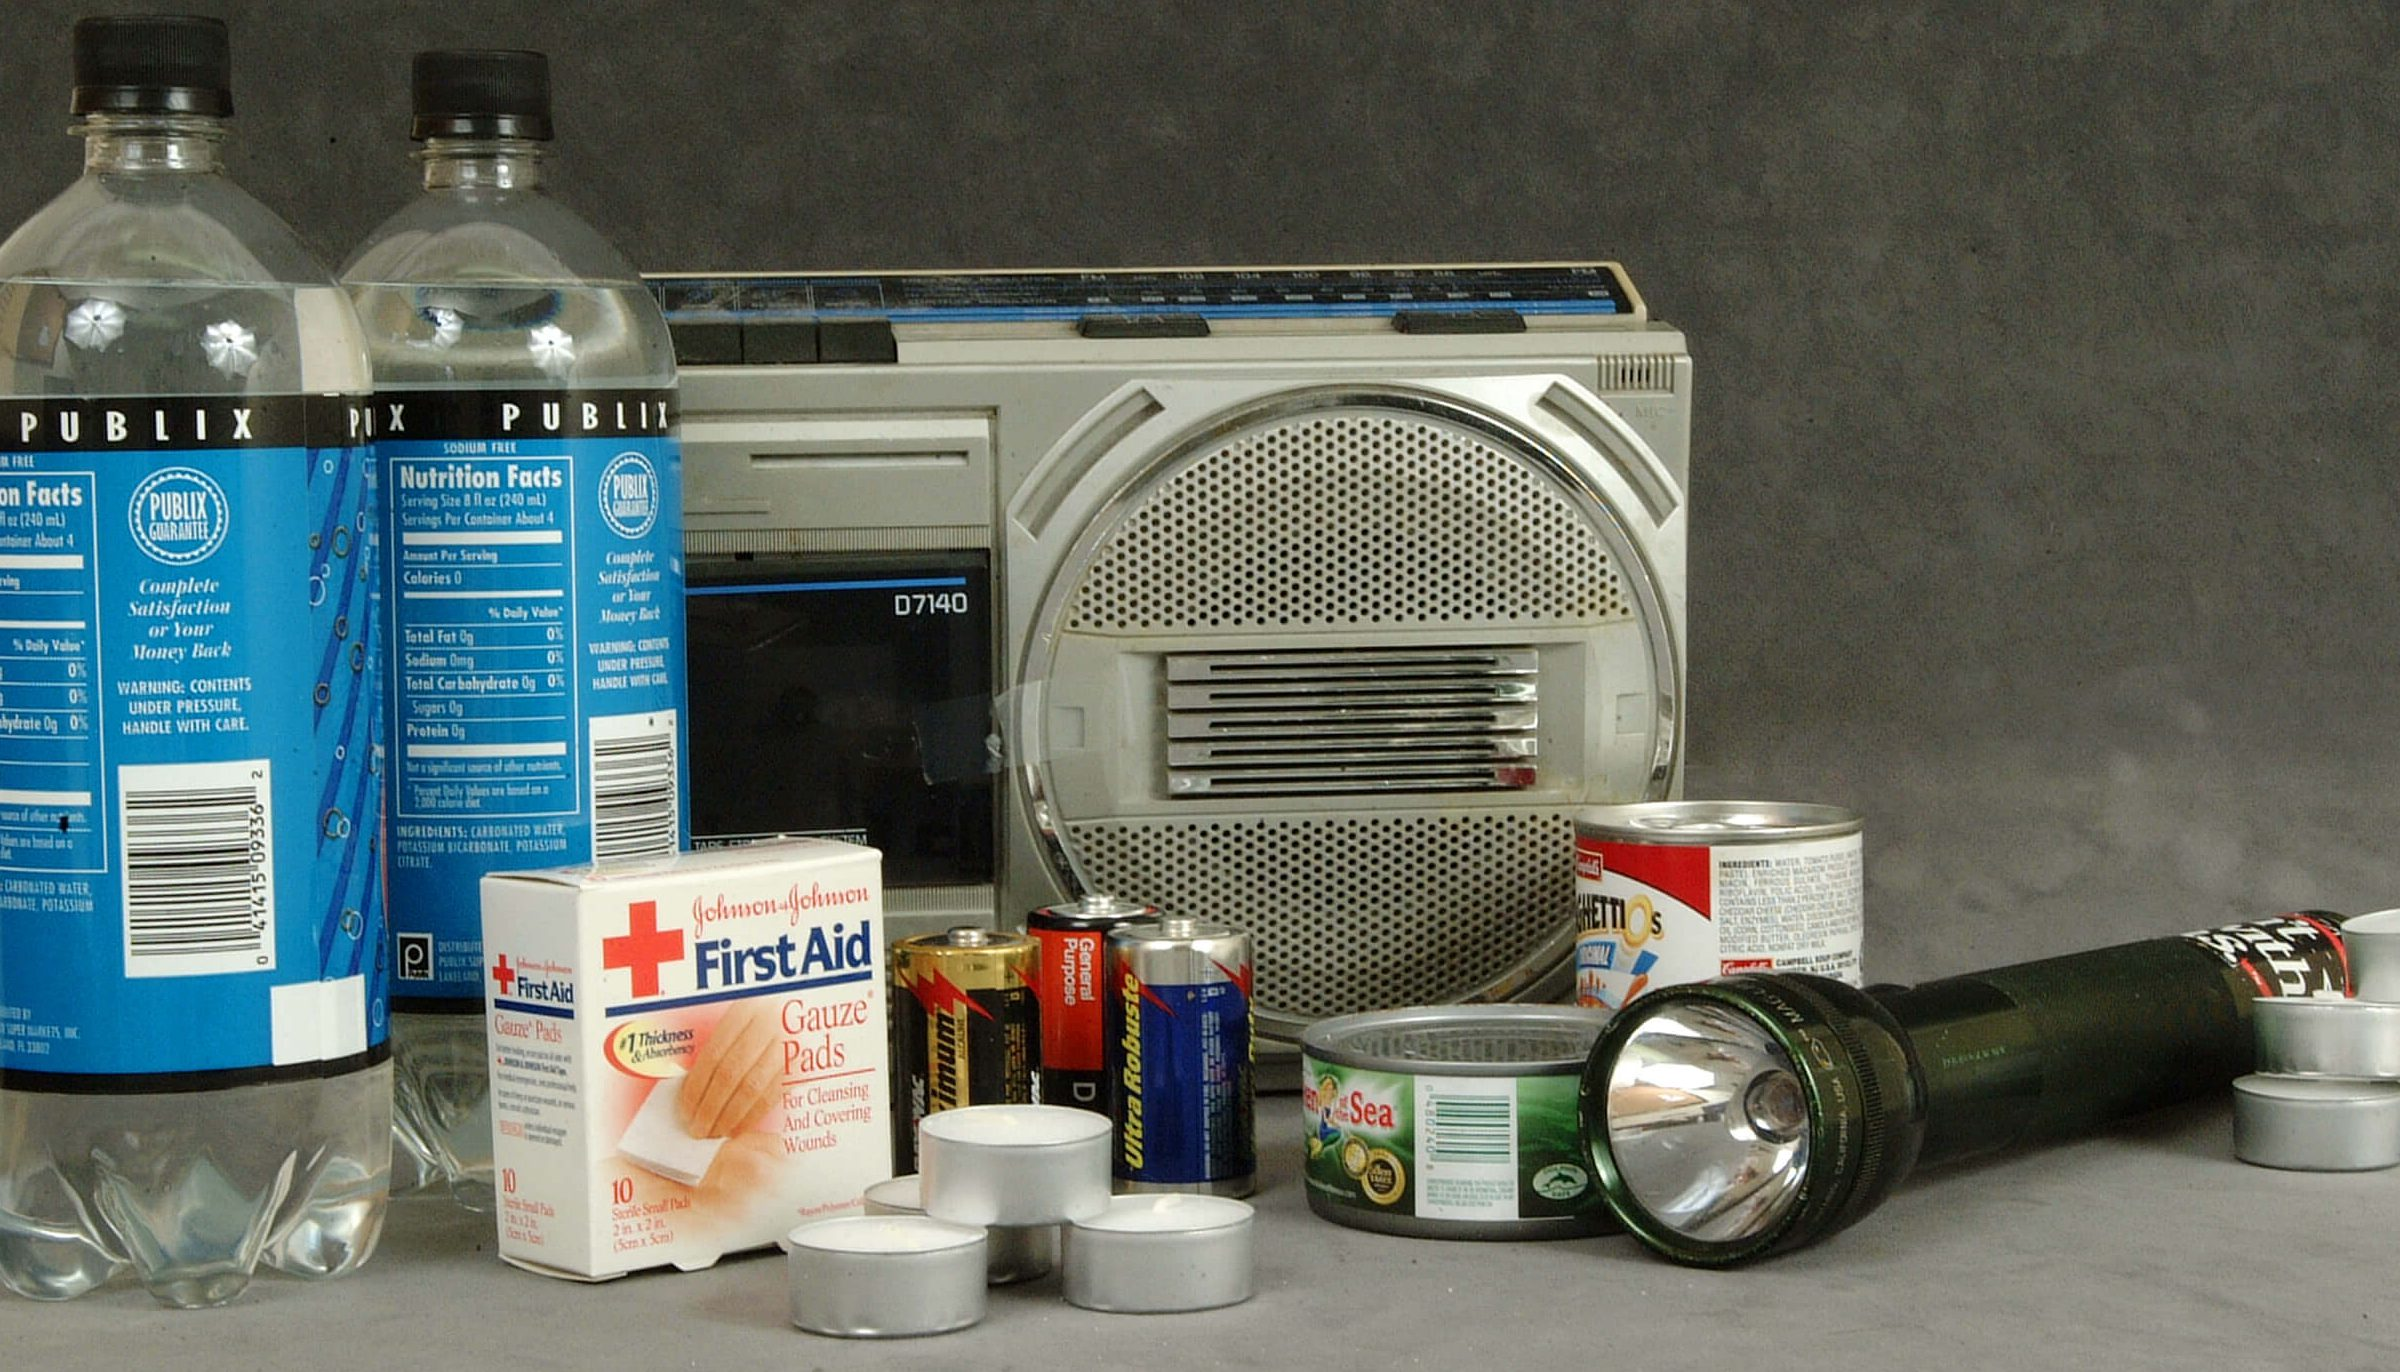 This is an example of the items to keep in a hurricane preparedness kit for disaster planning - radio, water, medicines, flashlight, batteries, canned food